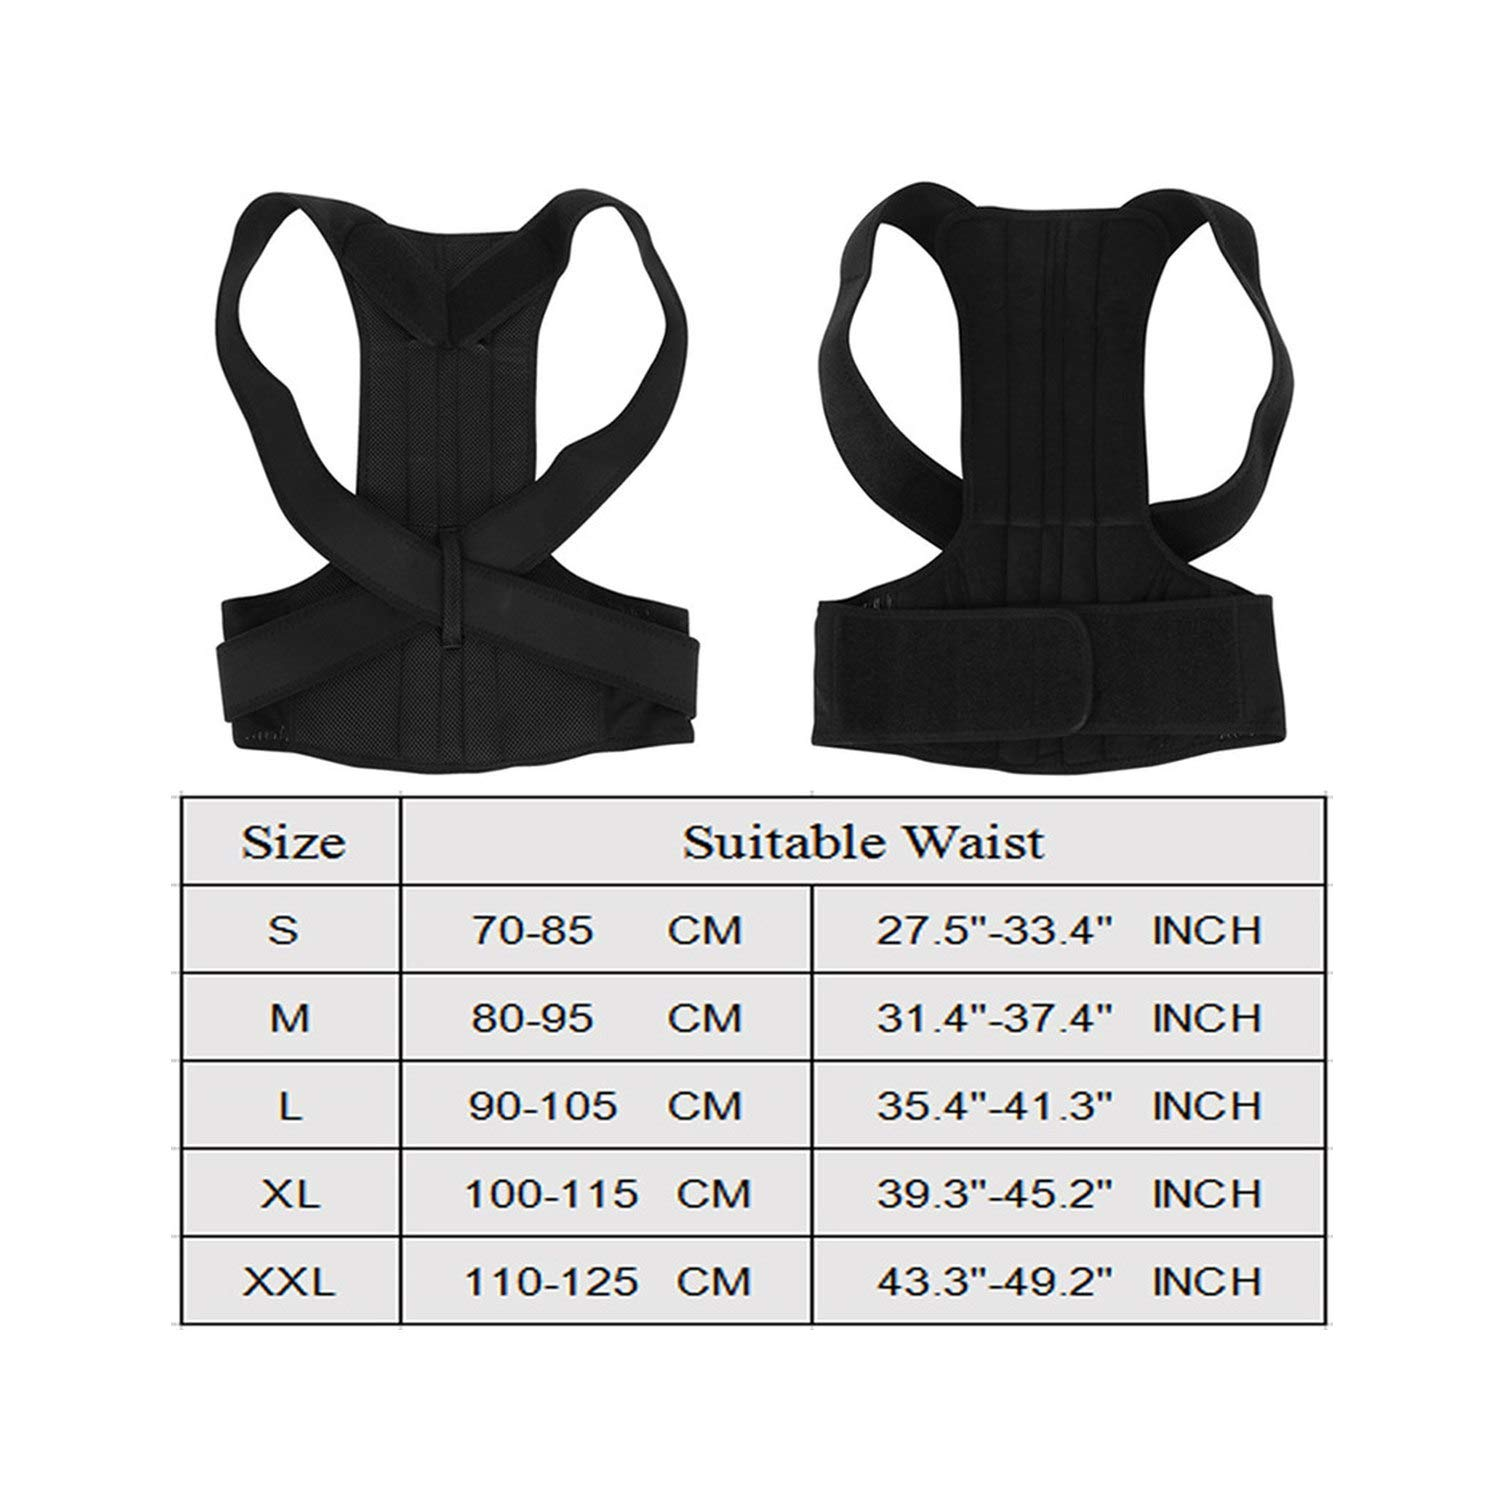 Adult Back Braces Therapy Posture Corrector Shoulder Bandage Orthopedic Lumbar Support Back Belt,Black,XXL